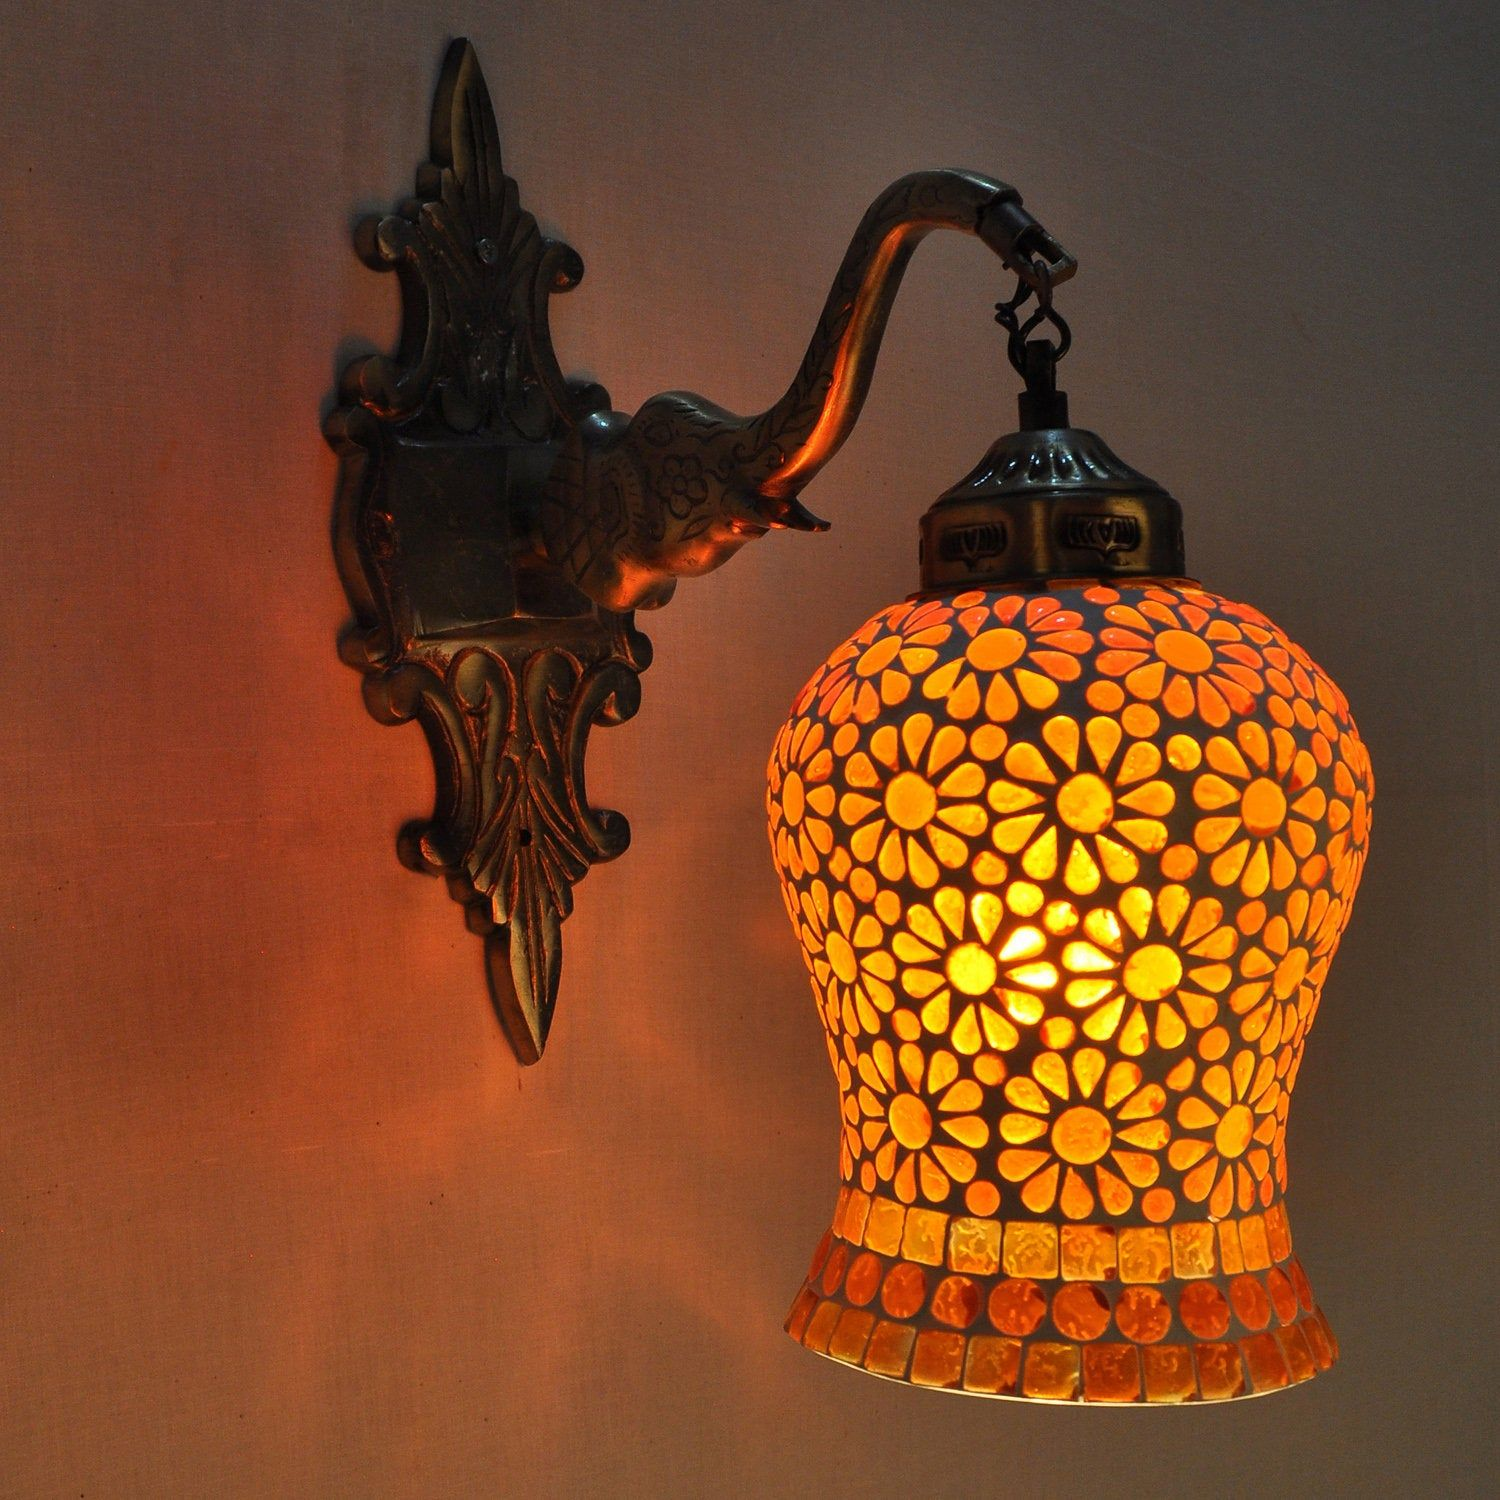 Antique Style Lamps Ceiling Lighting Wall Sconce Metal Fixture